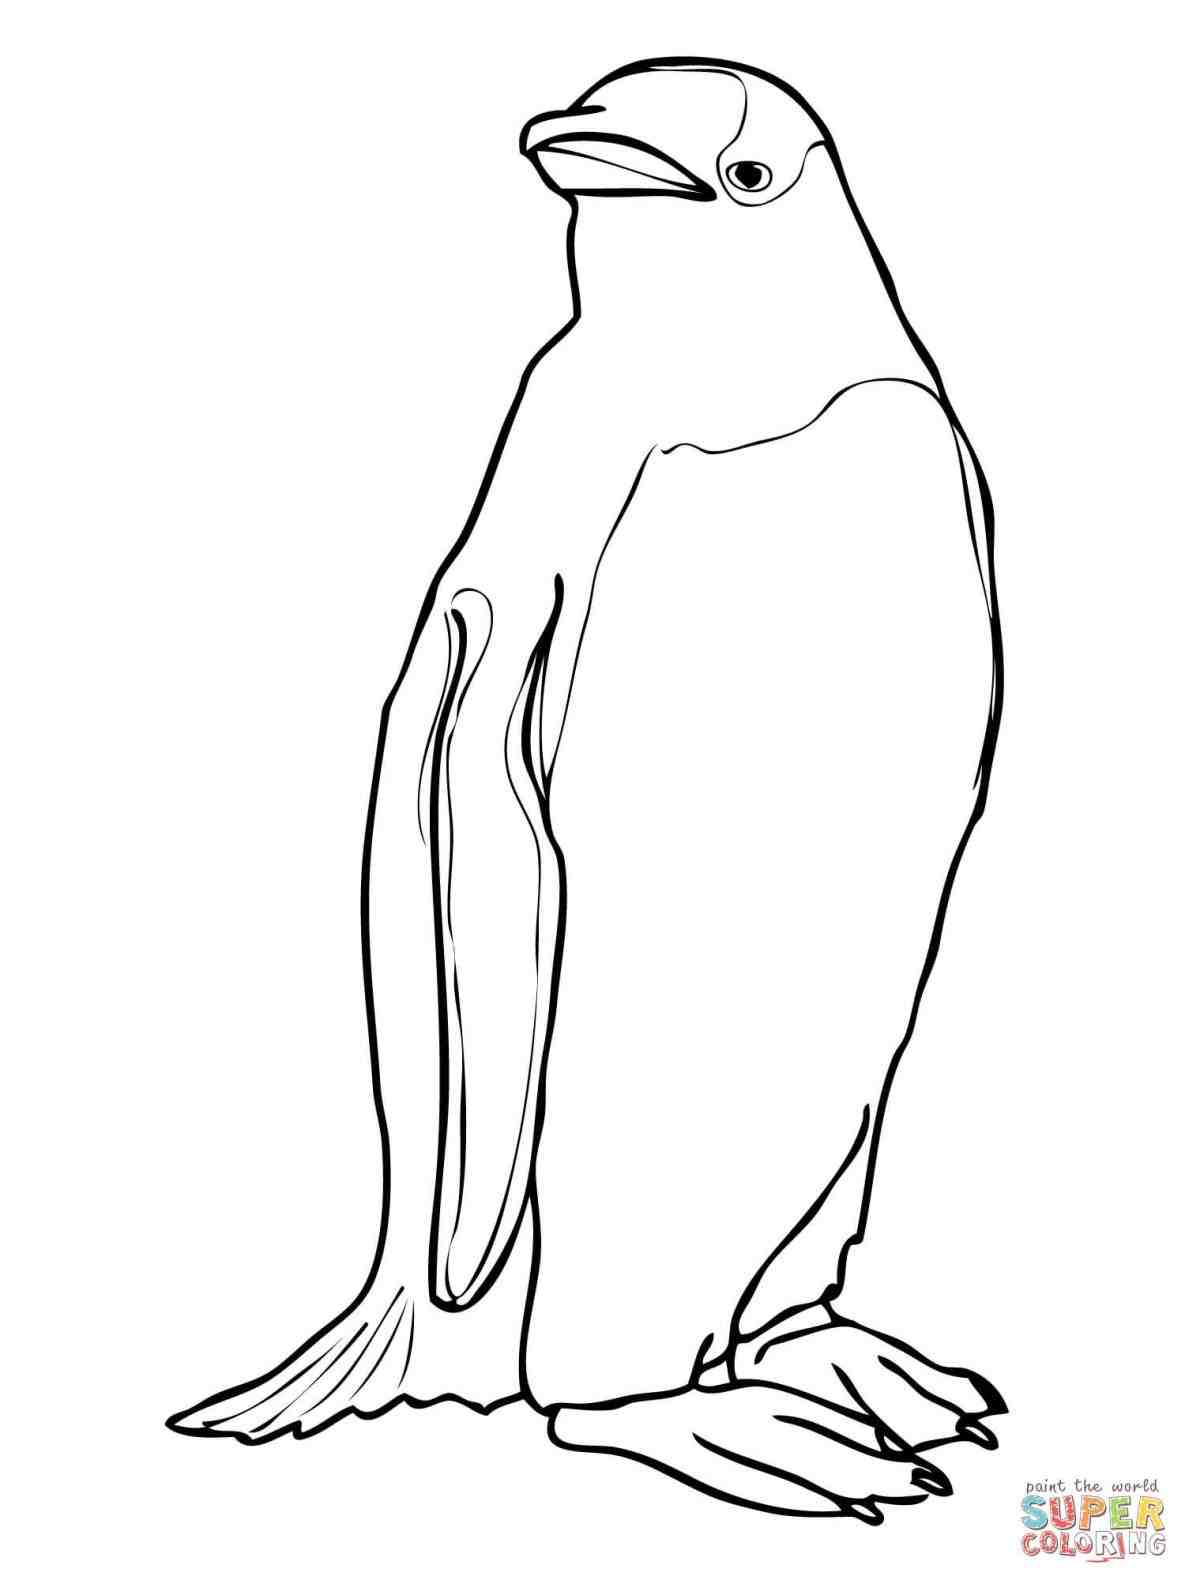 1185x1580 Download. How To Draw A Realistic Emperor Penguin Art For Kids Hub